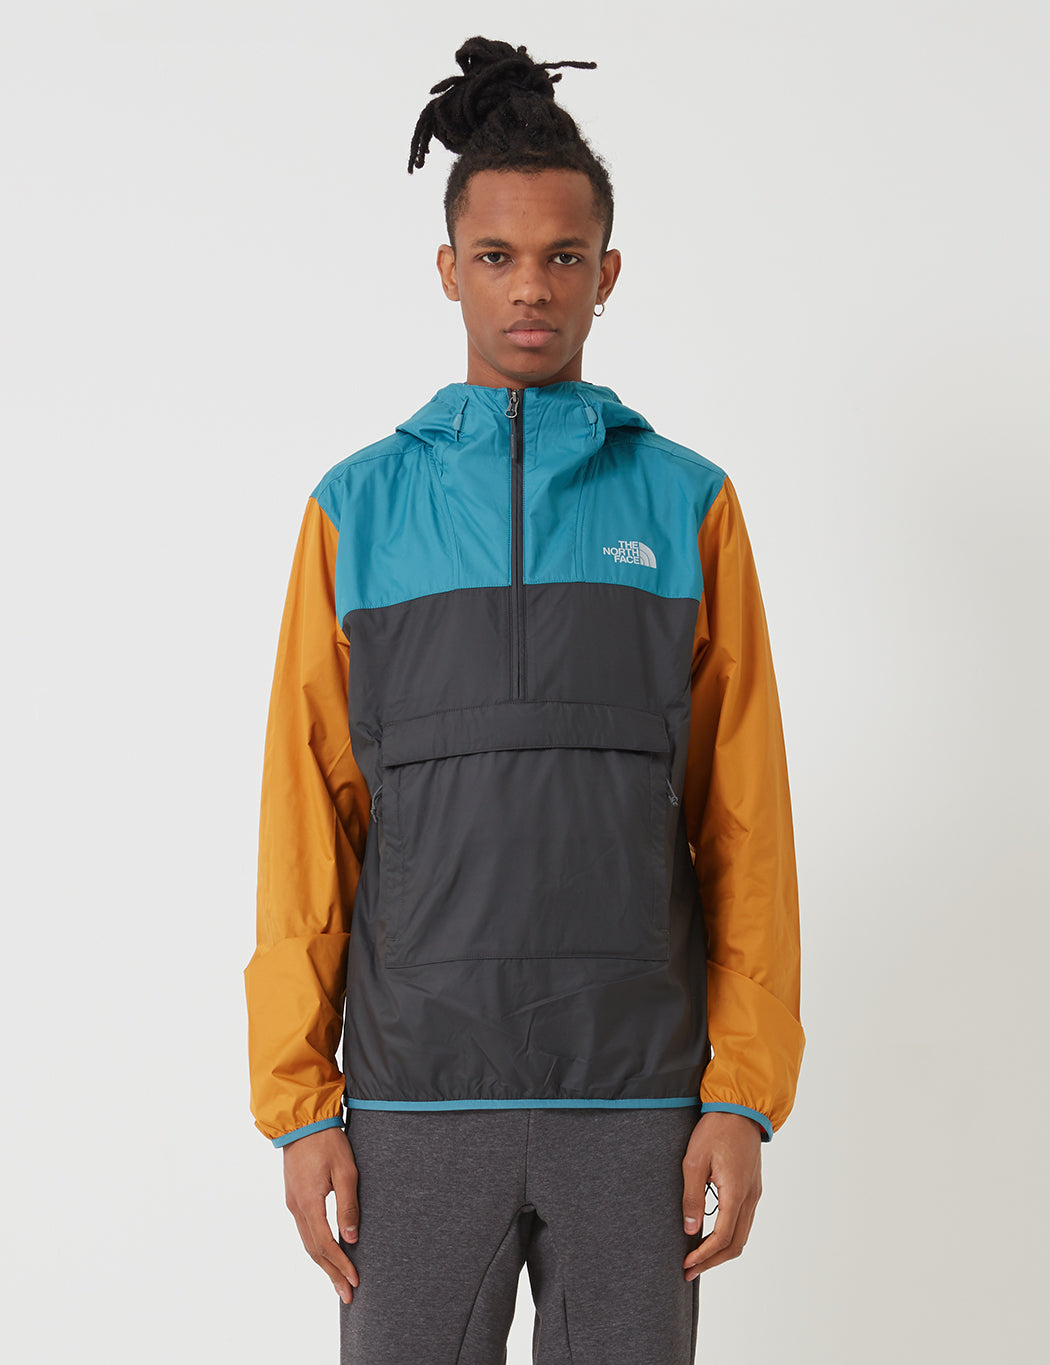 d42603a11 North Face Fanorak Pullover Jacket - Asphalt Grey/Storn Blue/Citrine Yellow